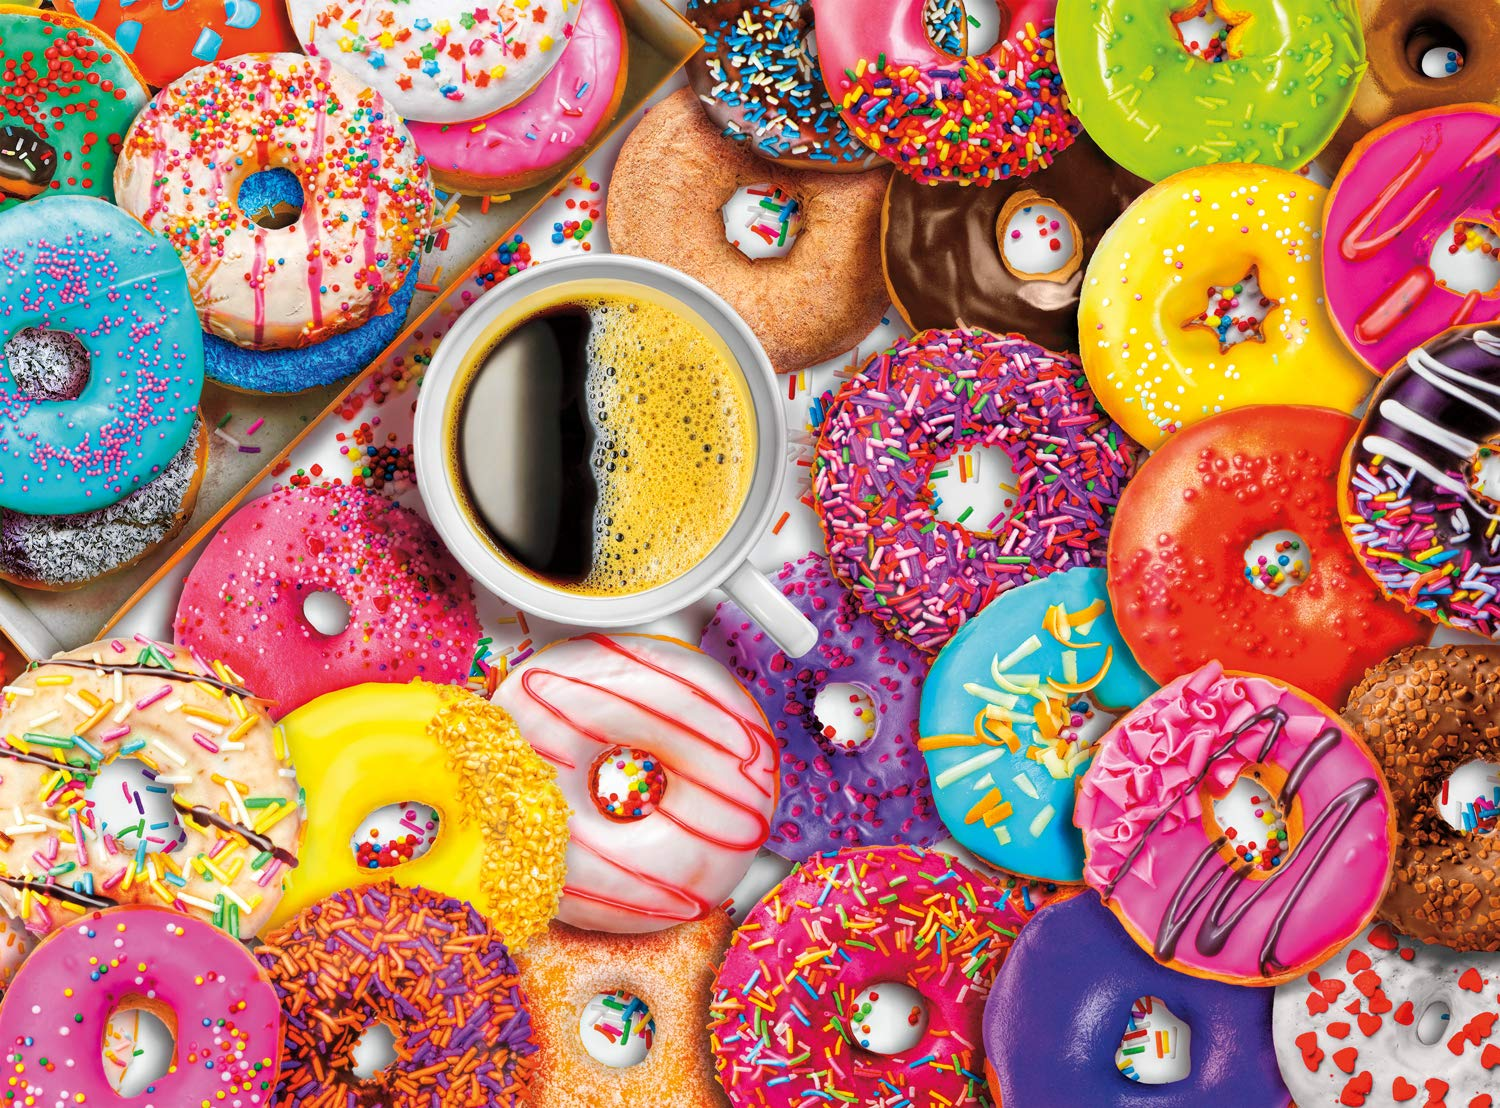 Coffee and Donuts Signature Collection Buffalo Games 1000 Piece Jigsaw Puzzle